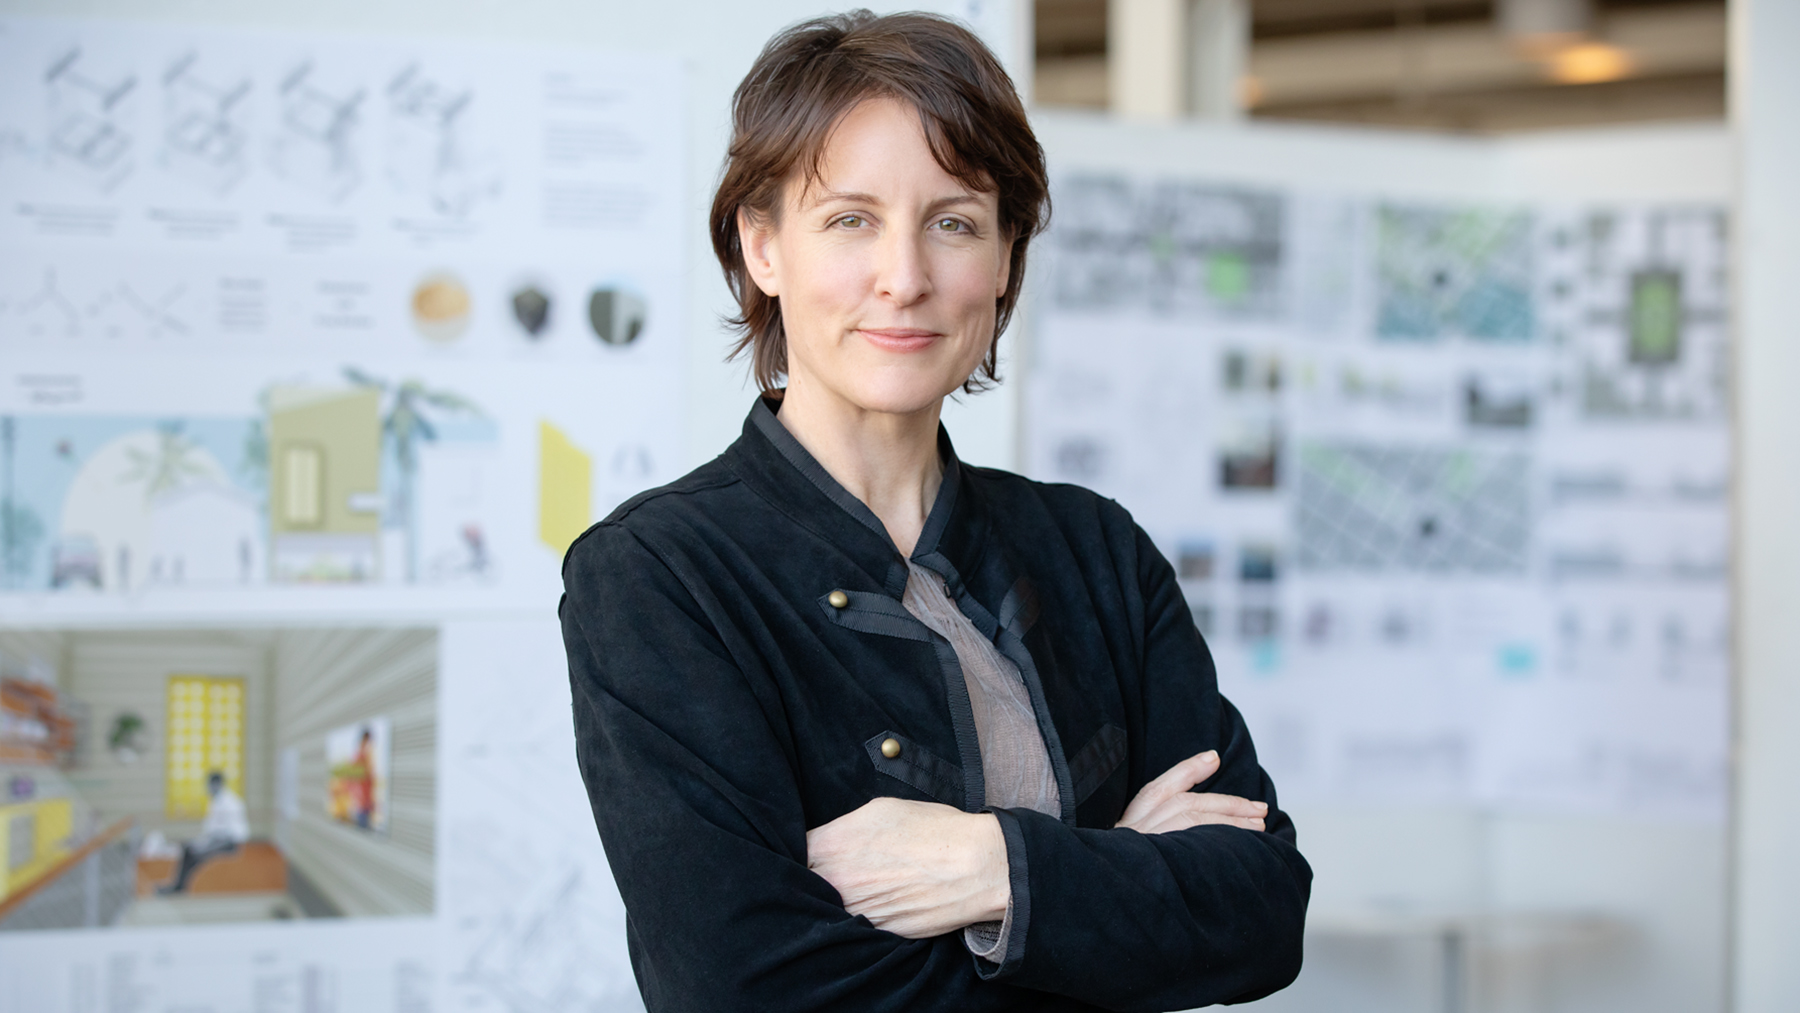 Landscape Architecture professso Mary Pat McGuire. Photo by Leslie B. Stauffer